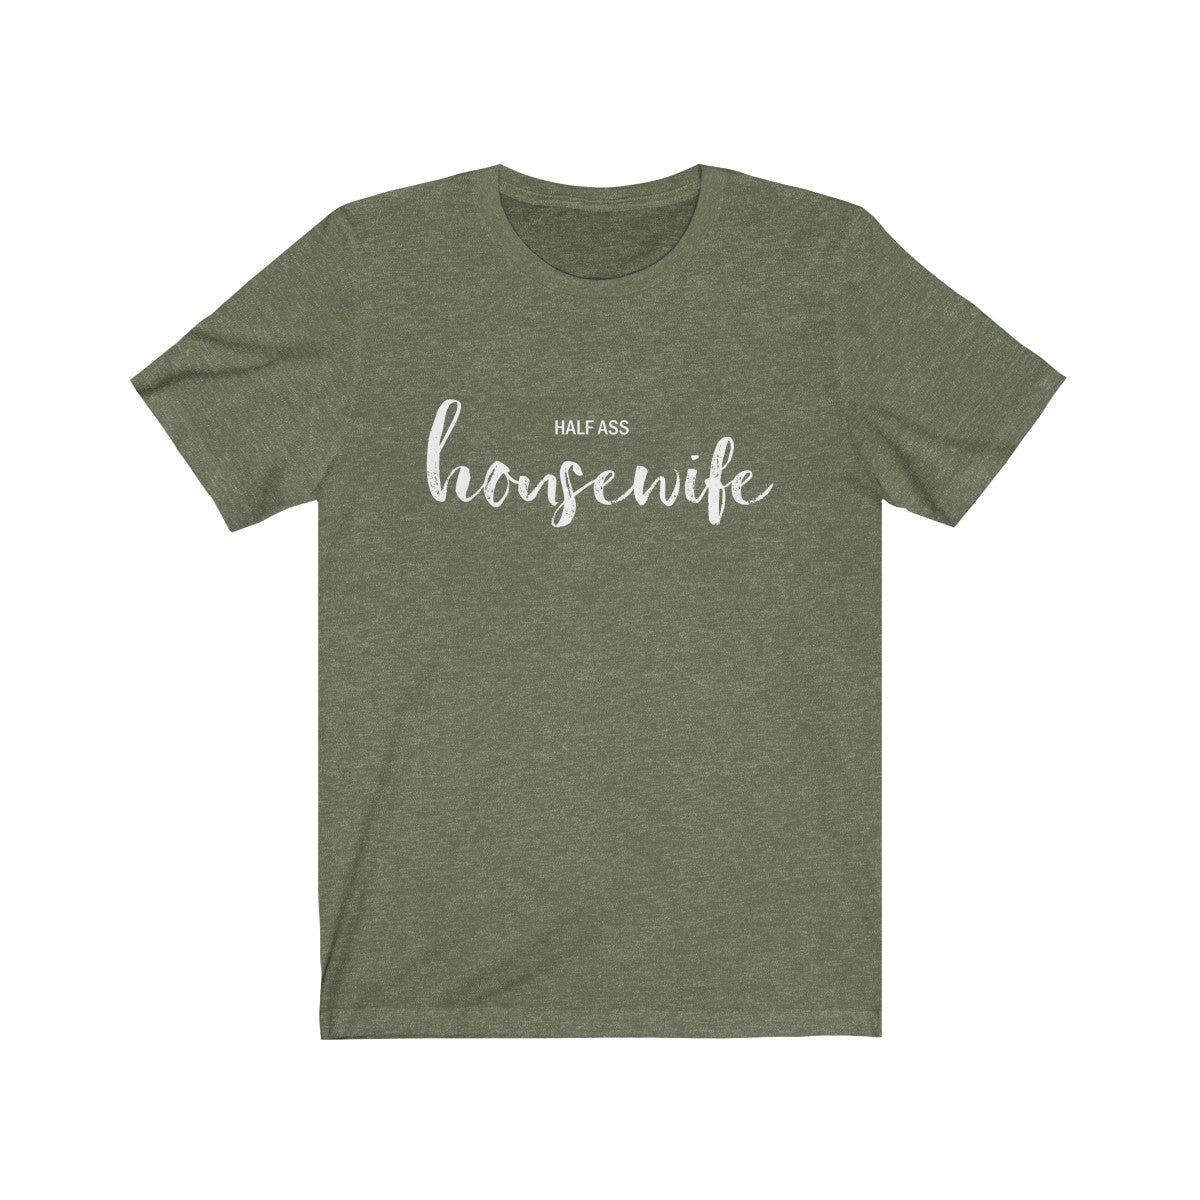 The Housewife Tee